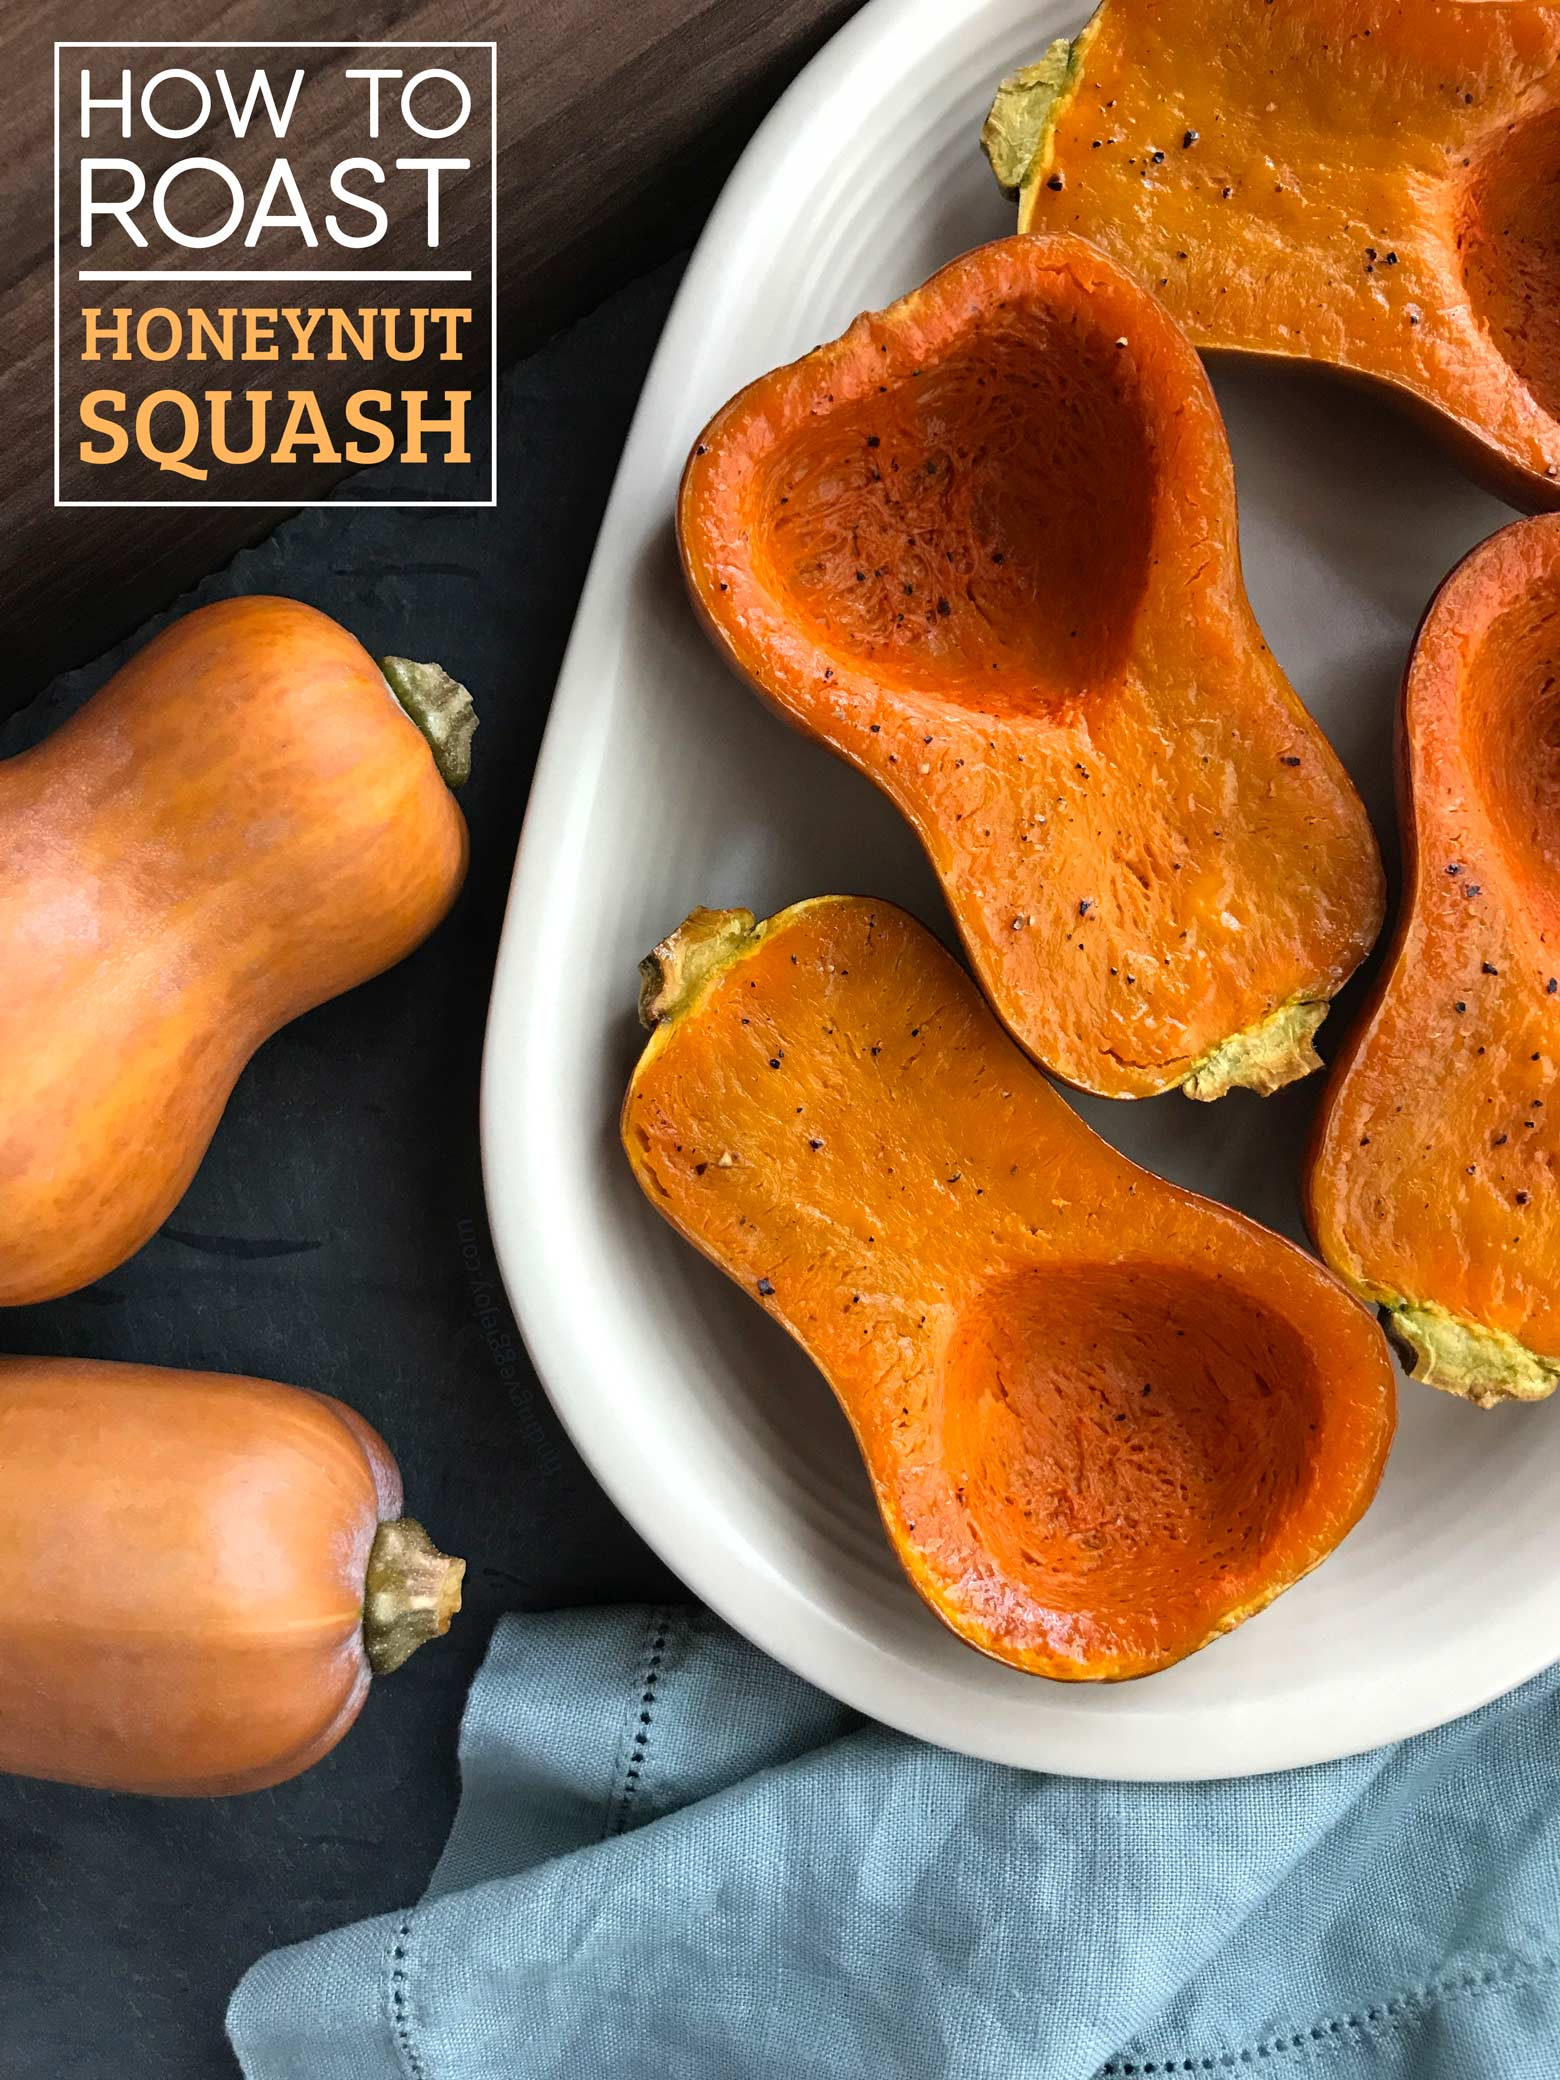 Honeynut Squash: Easy and incredibly delicious. With just a few seasonings, this winter squash can be prepped quickly and roasted. Simple and delightful! #honeynutsquash #wintersquash #howto #minibutternutsquash #fallfood #vegetarian #vegan #plantbased #healthysidedish #squash #howtoroastsquash